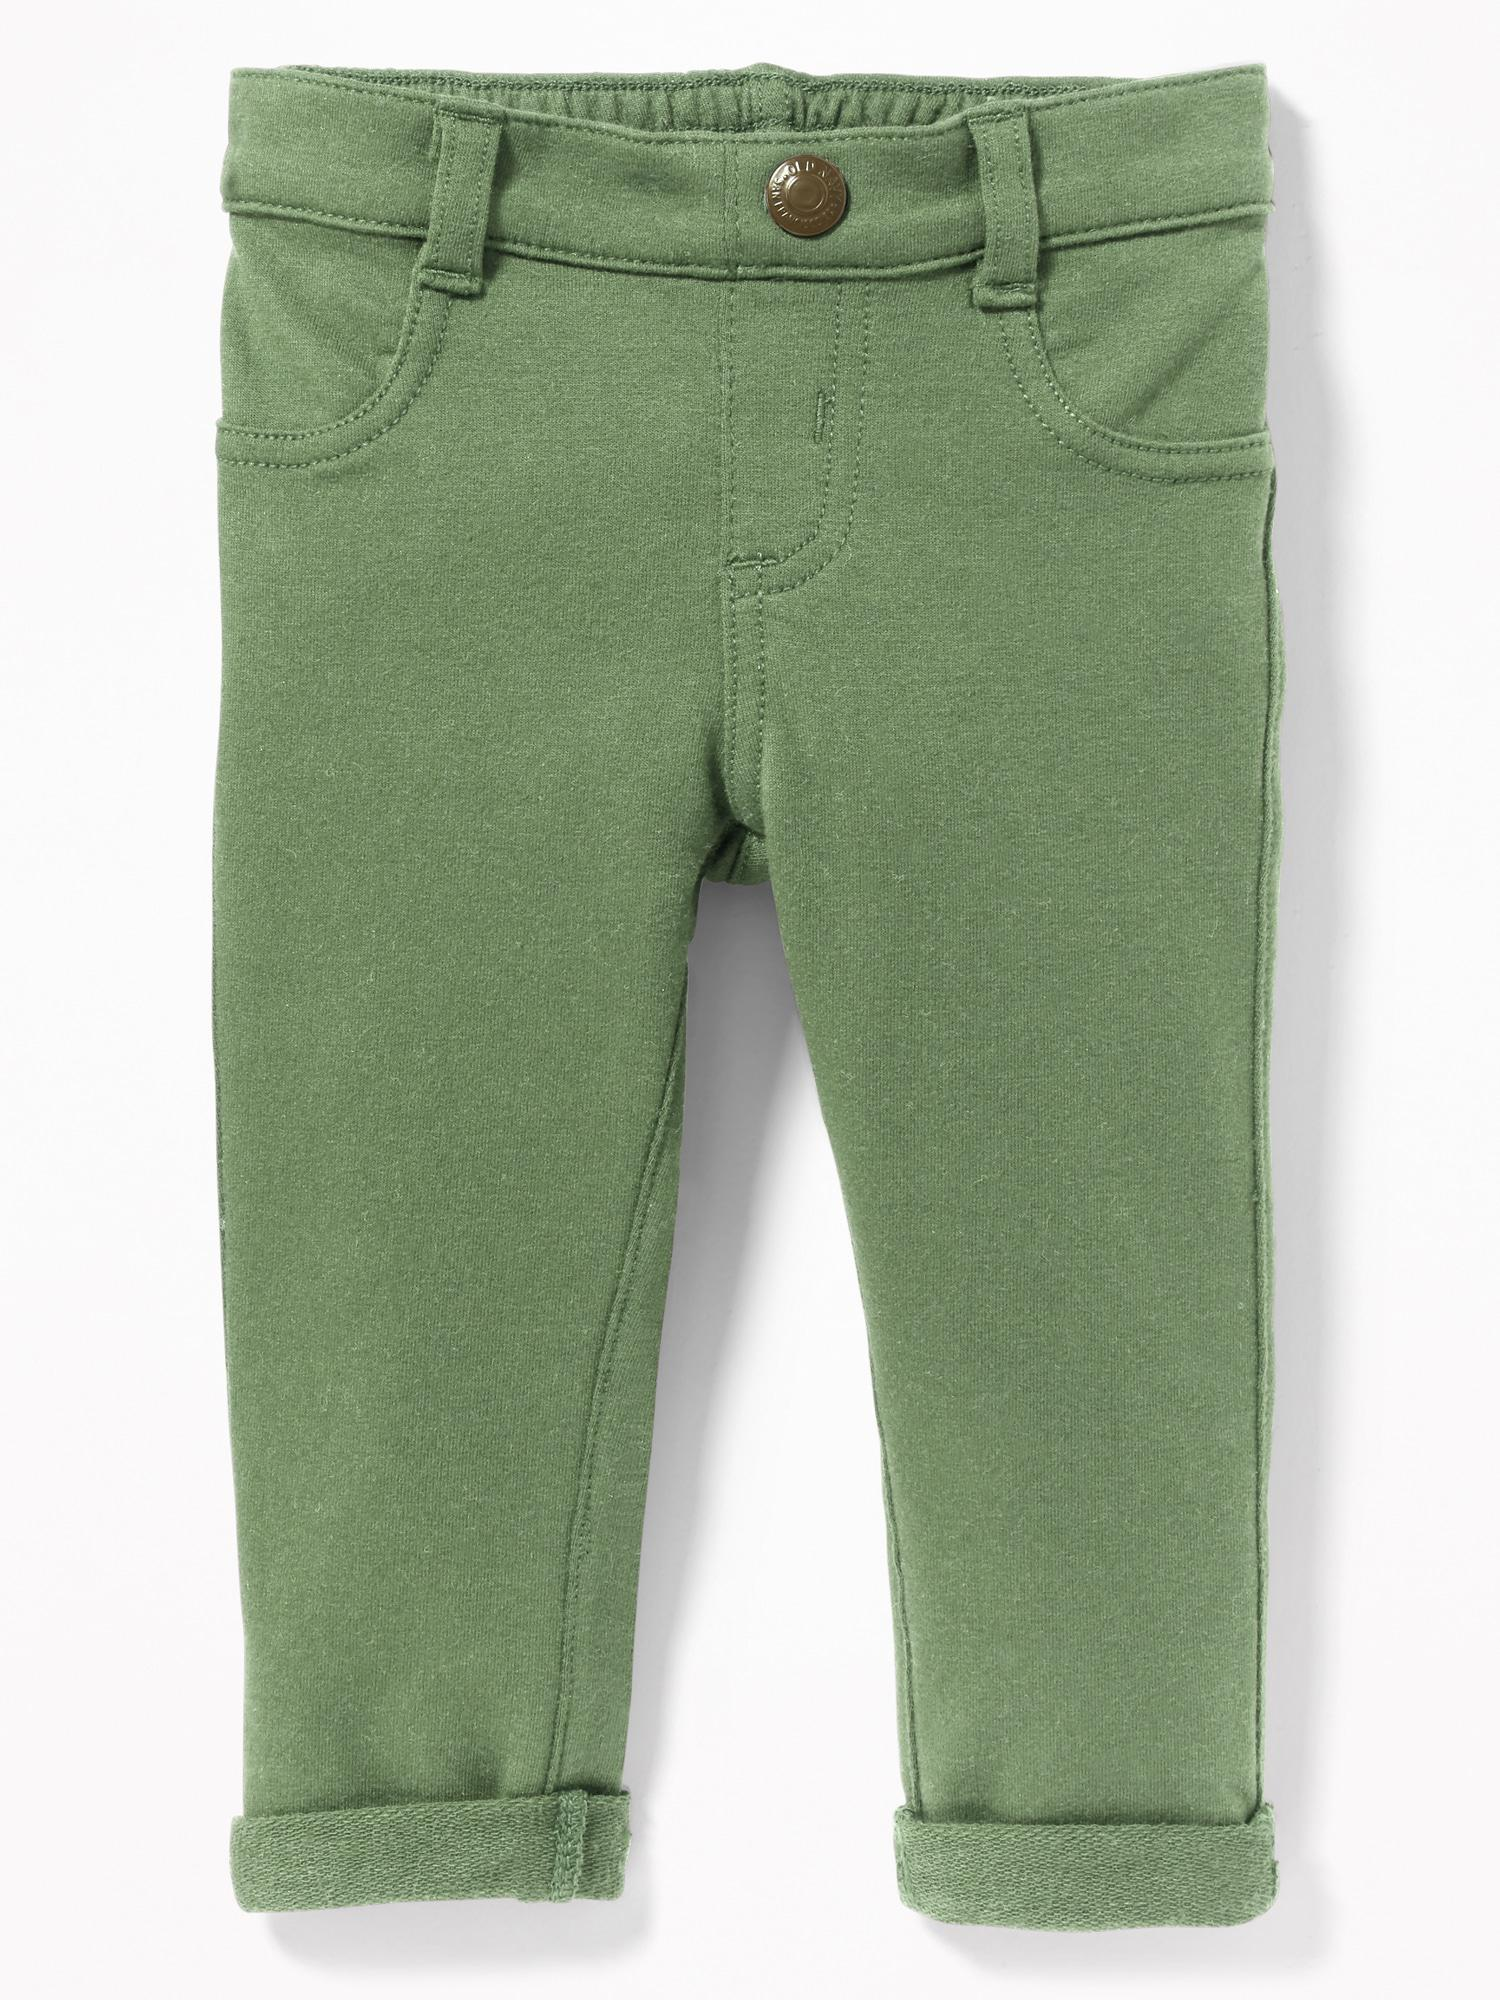 6823c53fad6d7 Lyst - Old Navy French-terry Rolled-cuff Jeggings in Green